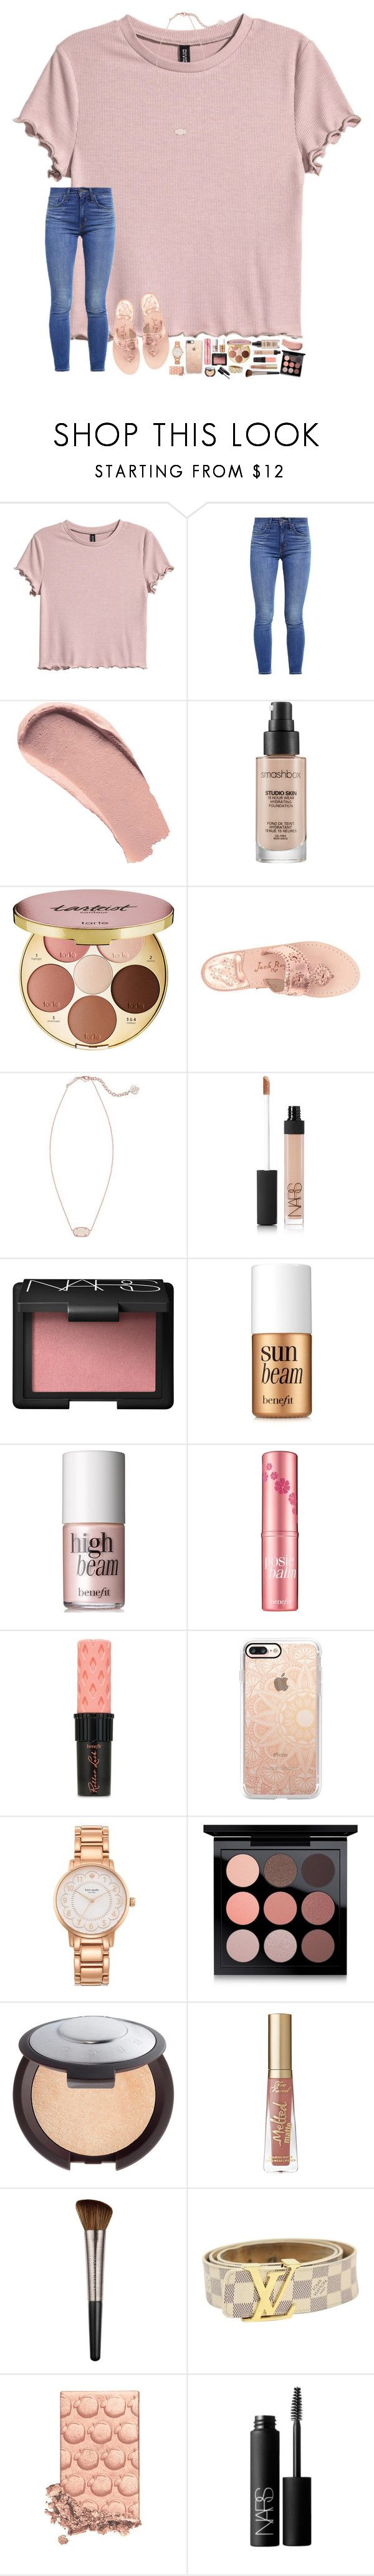 """""""happy valentines day """" by hopemarlee ❤ liked on Polyvore featuring H&M, Levi's, Burberry, Smashbox, tarte, Jack Rogers, Kendra Scott, NARS Cosmetics, Benefit and Casetify"""